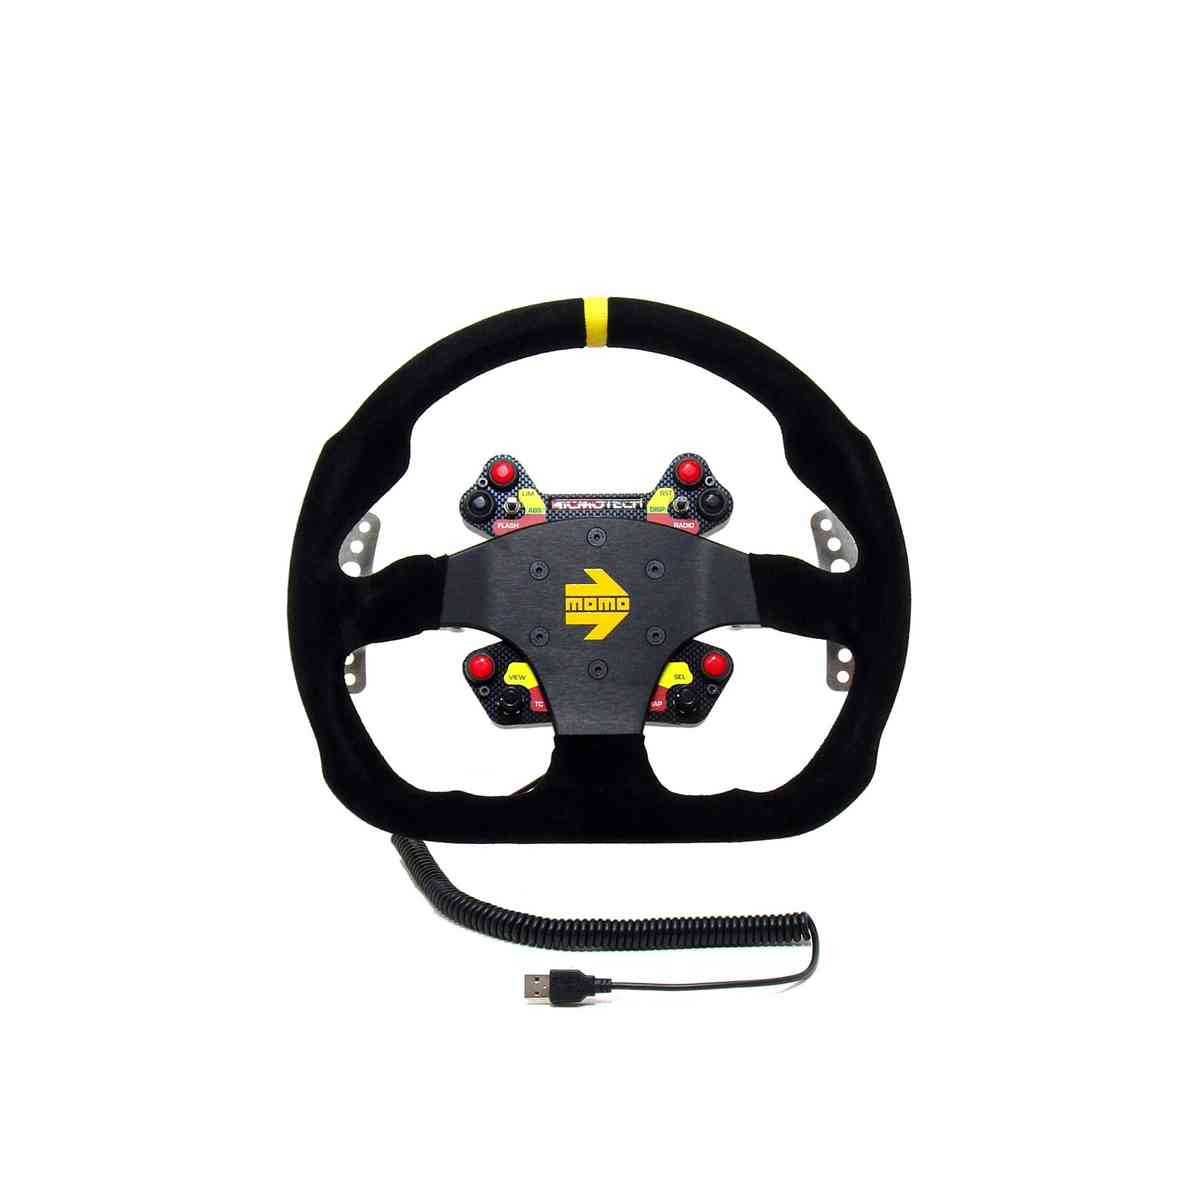 RealGear WHEELpro Momo MOD30 D-Shape Add-on Wheel for Direct-Drive Servos